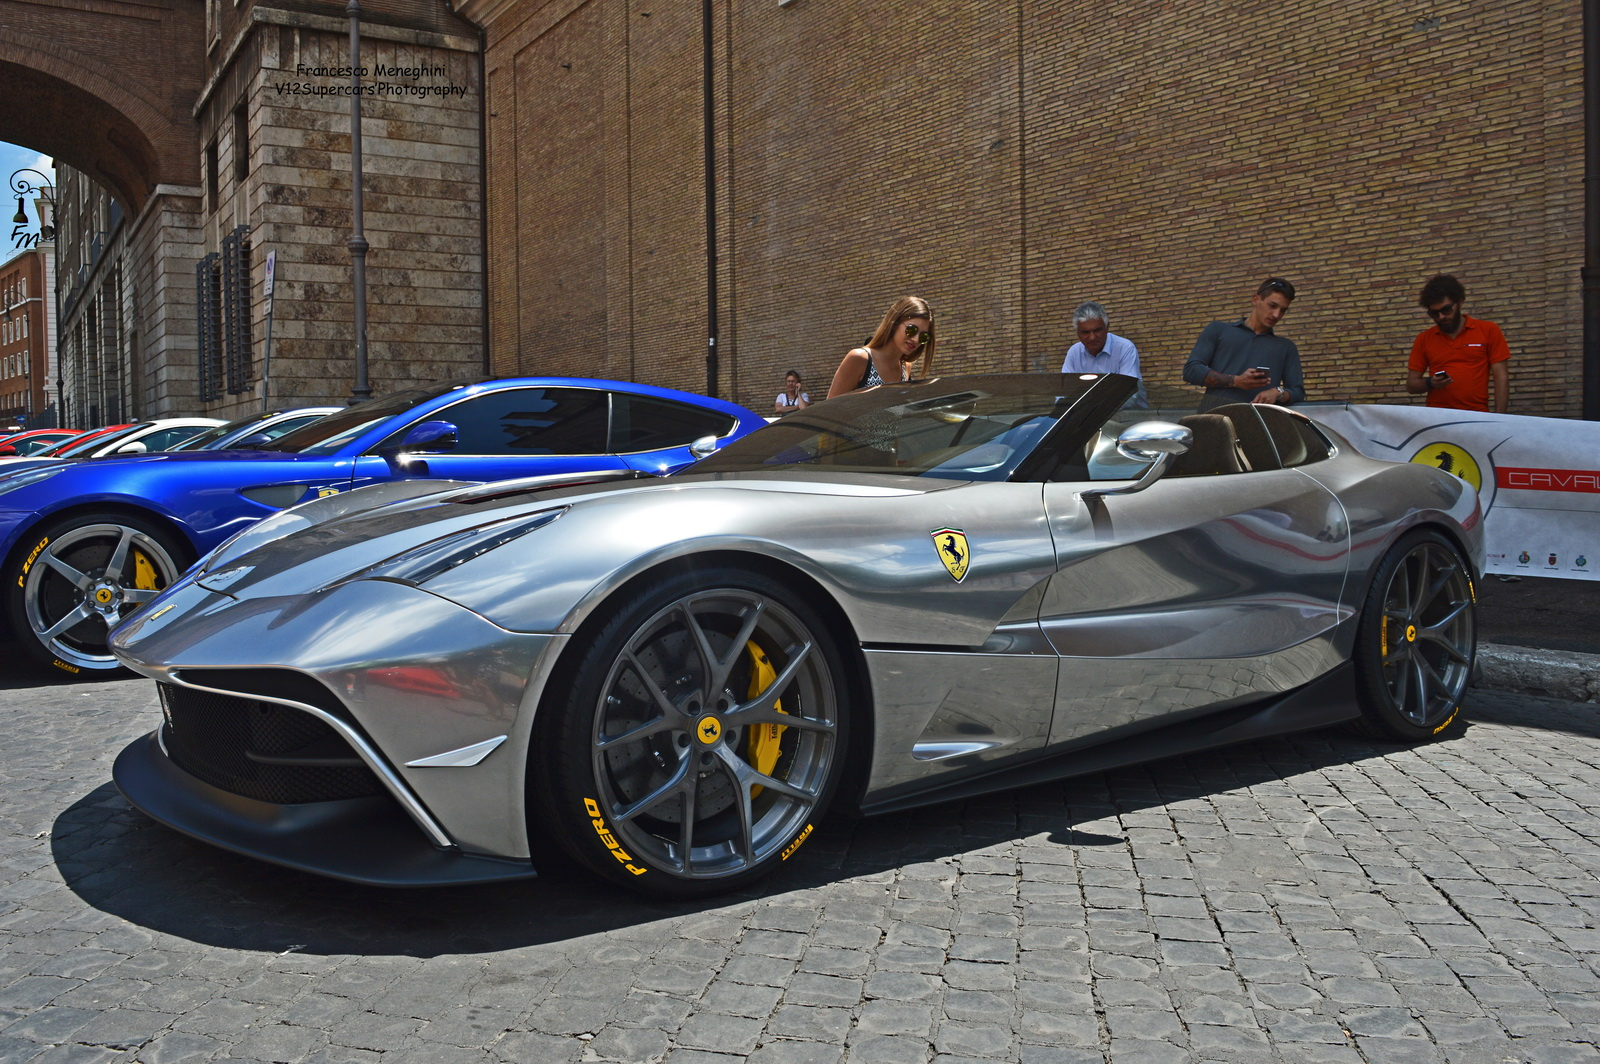 Unique Chrome-Silver Ferrari F12 TRS Spotted In Rome ...